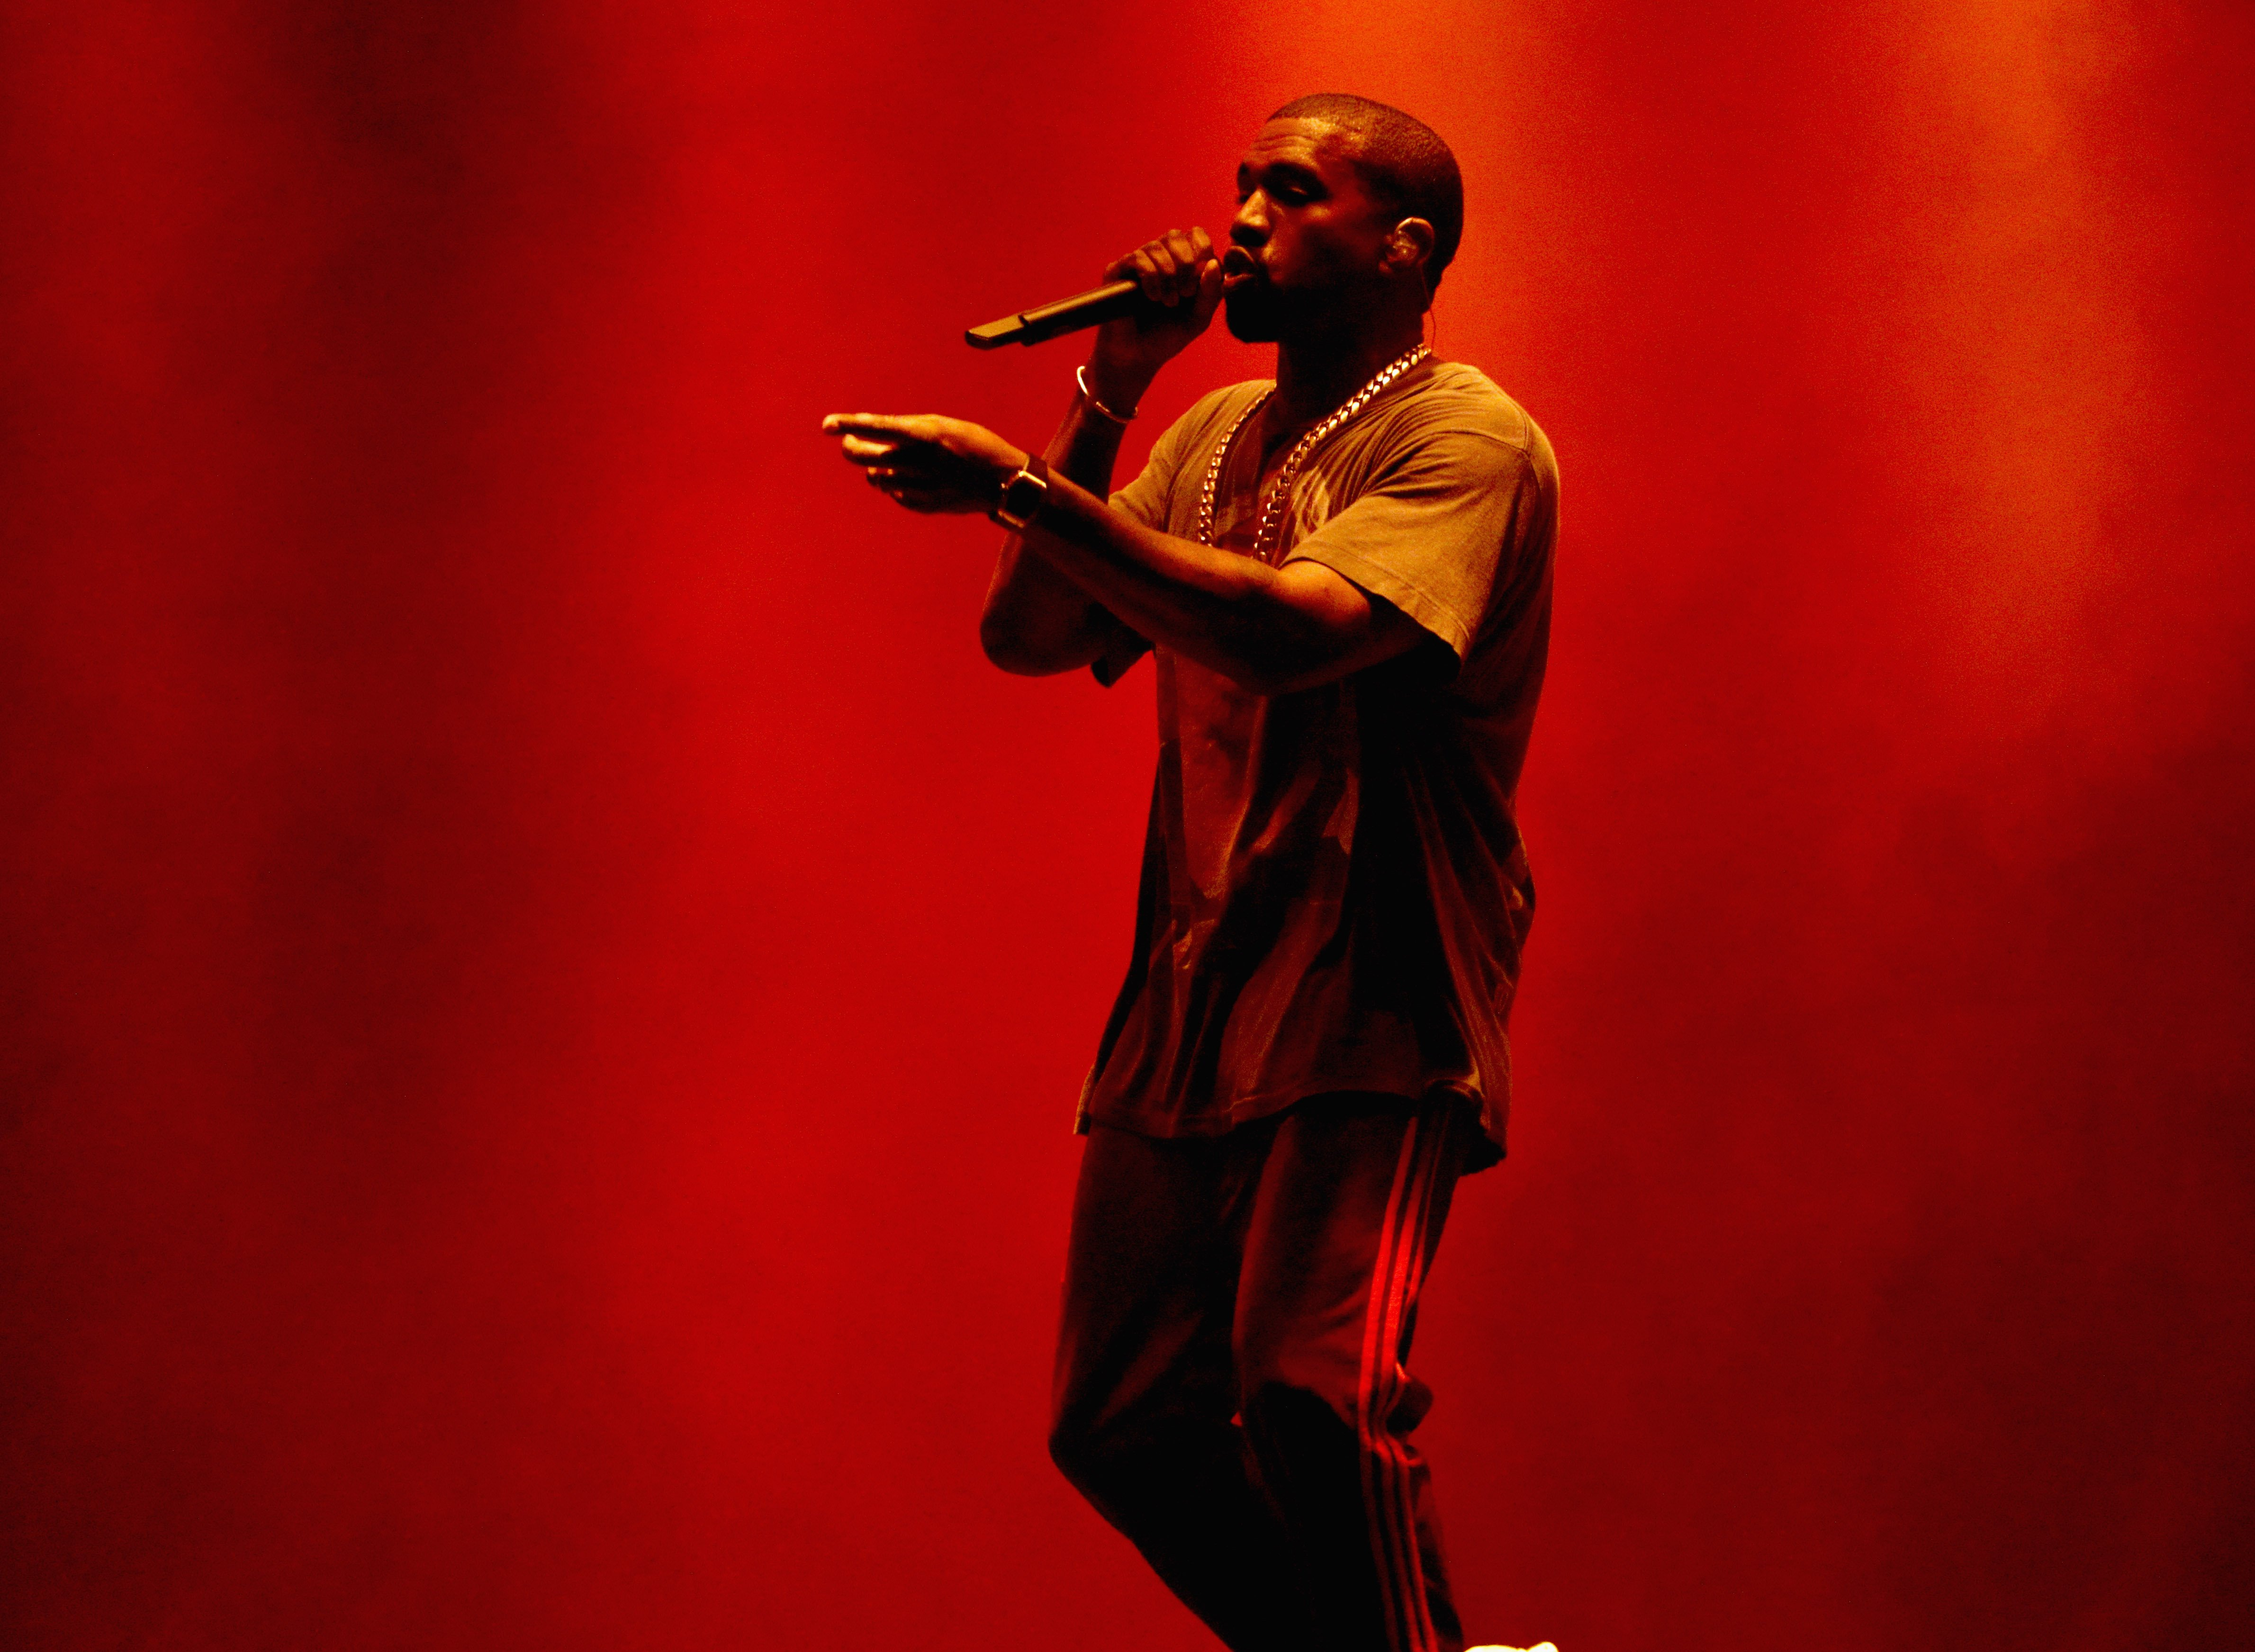 Kanye West performs onstage during The Meadows Music & Arts Festival Day 2 on October 2, 2016 in Queens, New York